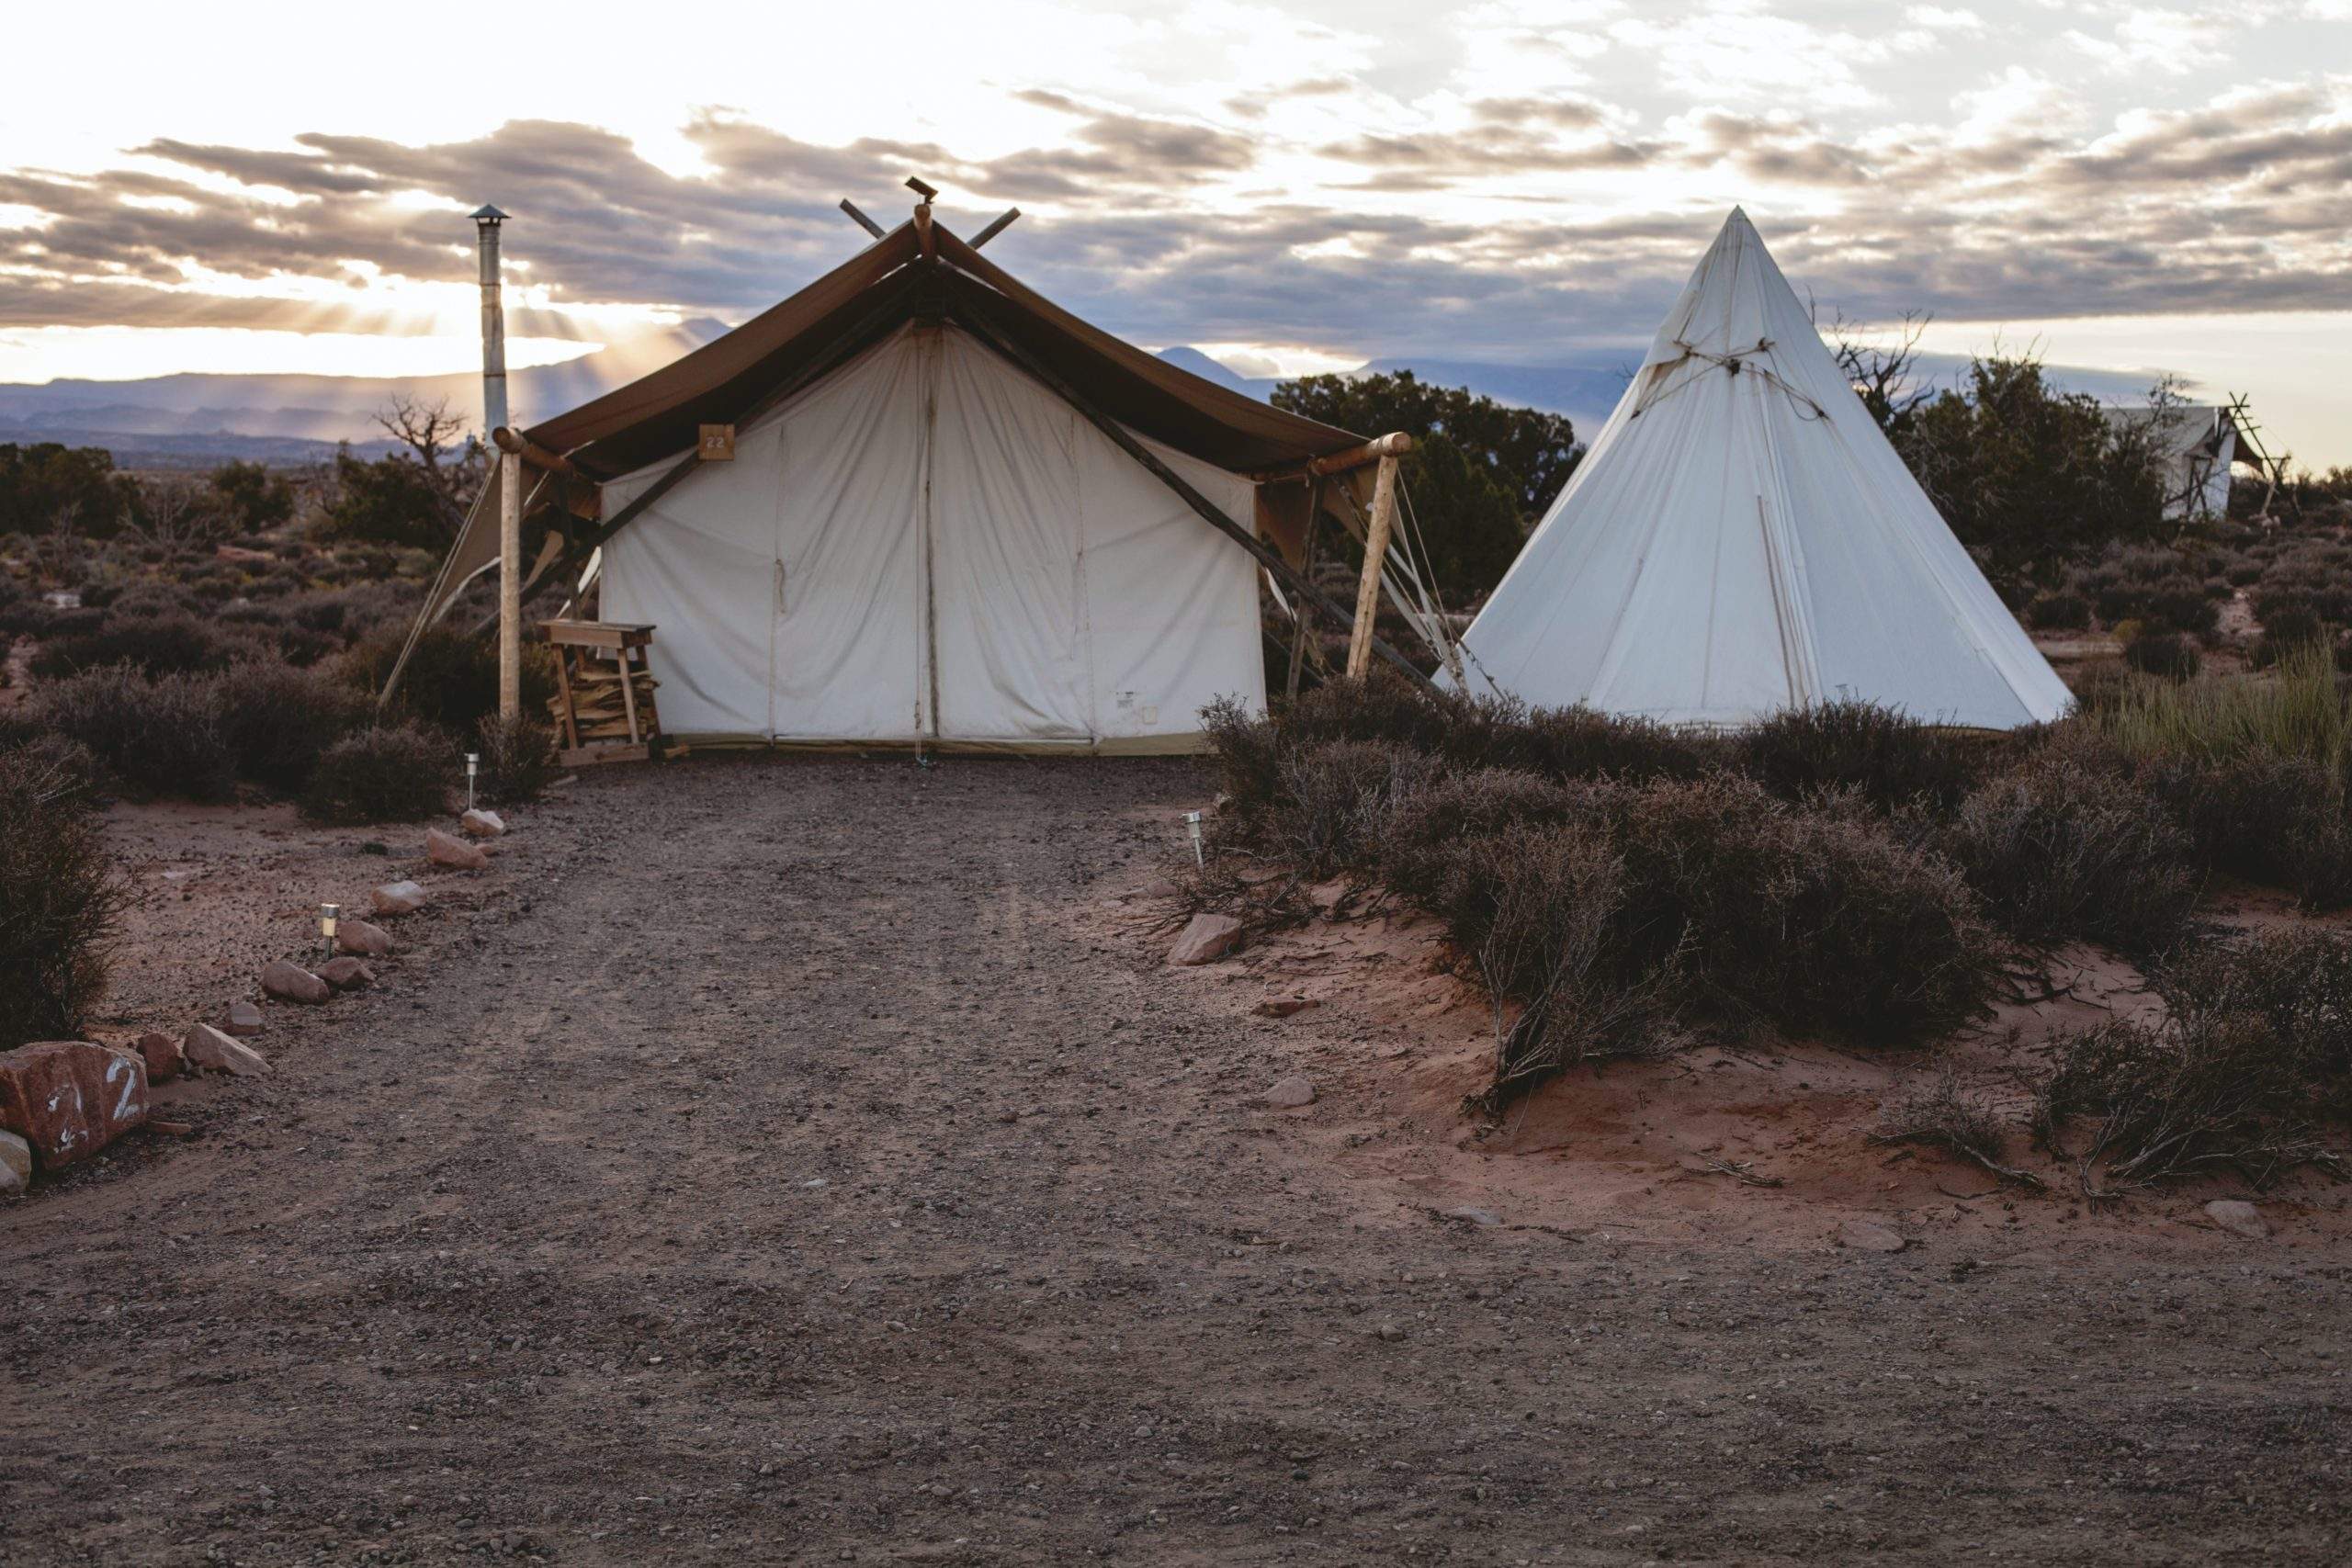 Glamping sites in Utah are popping up with vigor, but not every community in the areas affected is thrilled.